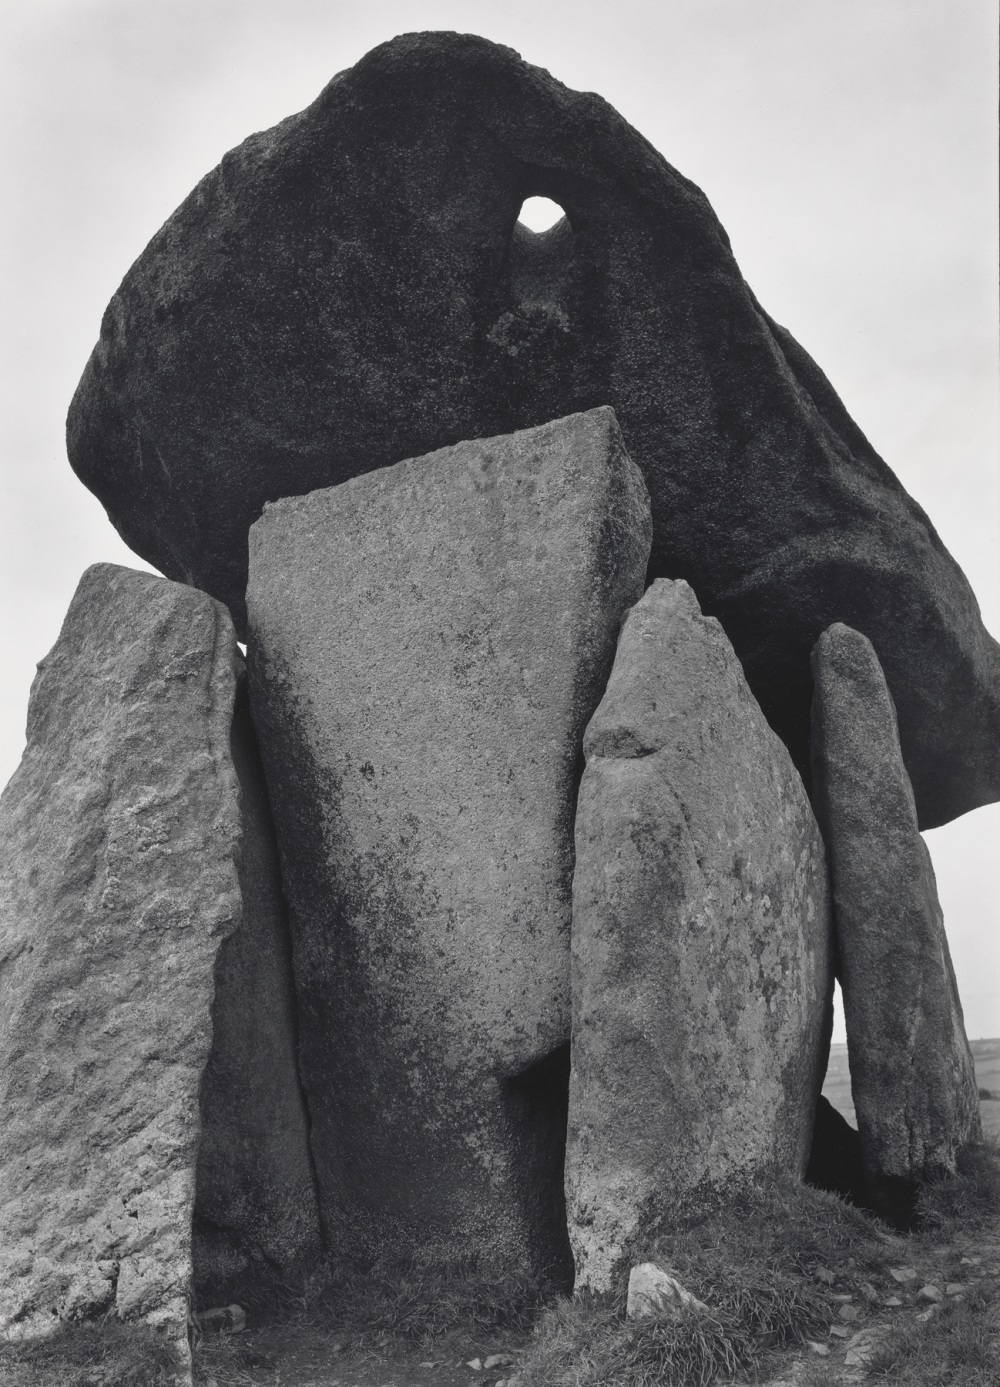 Paul Caponigro, Trethevy Quoit, Cornwall, England, 1977.